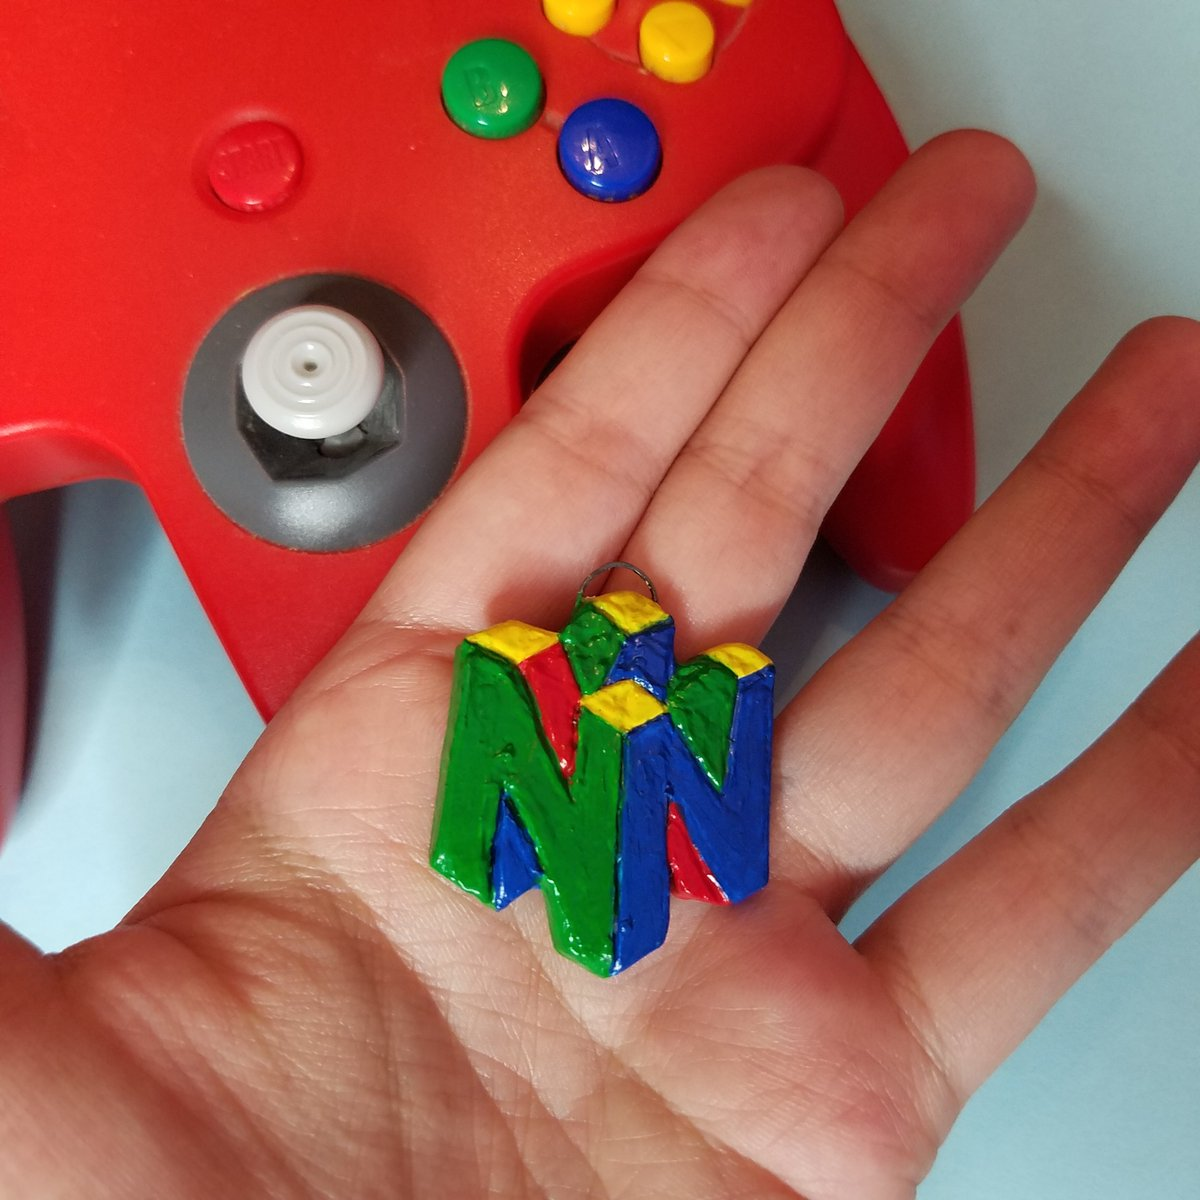 Get N or Get Out  #nintendo #clay pic.twitter.com/0gHARYW0Tc